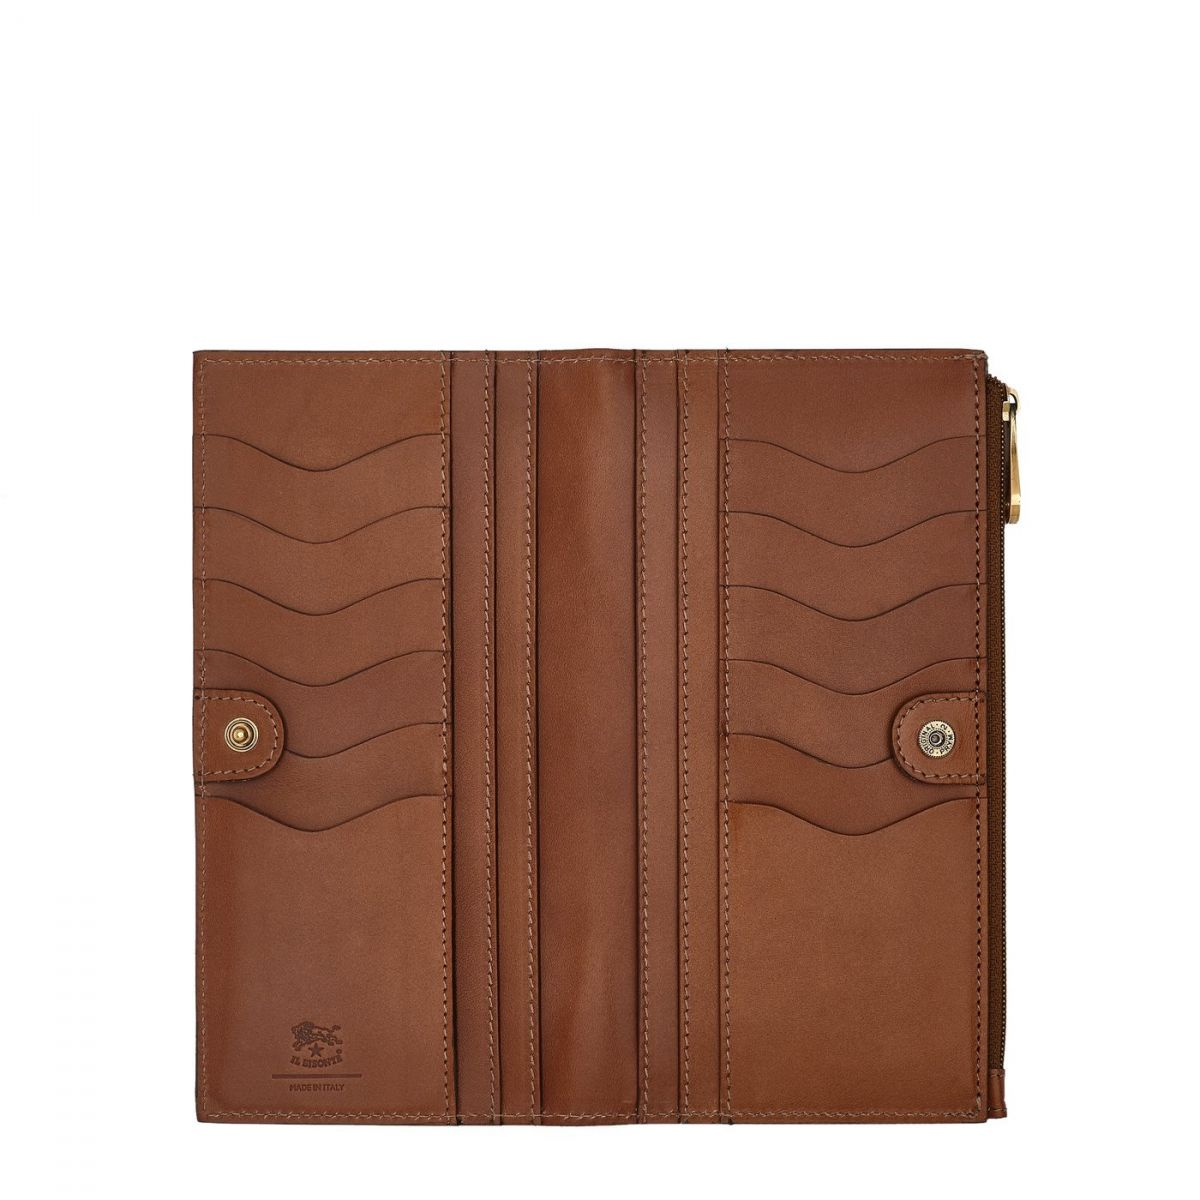 Women's Continental Wallet Giulia in Cowhide Leather SCW068 color Chocolate | Details